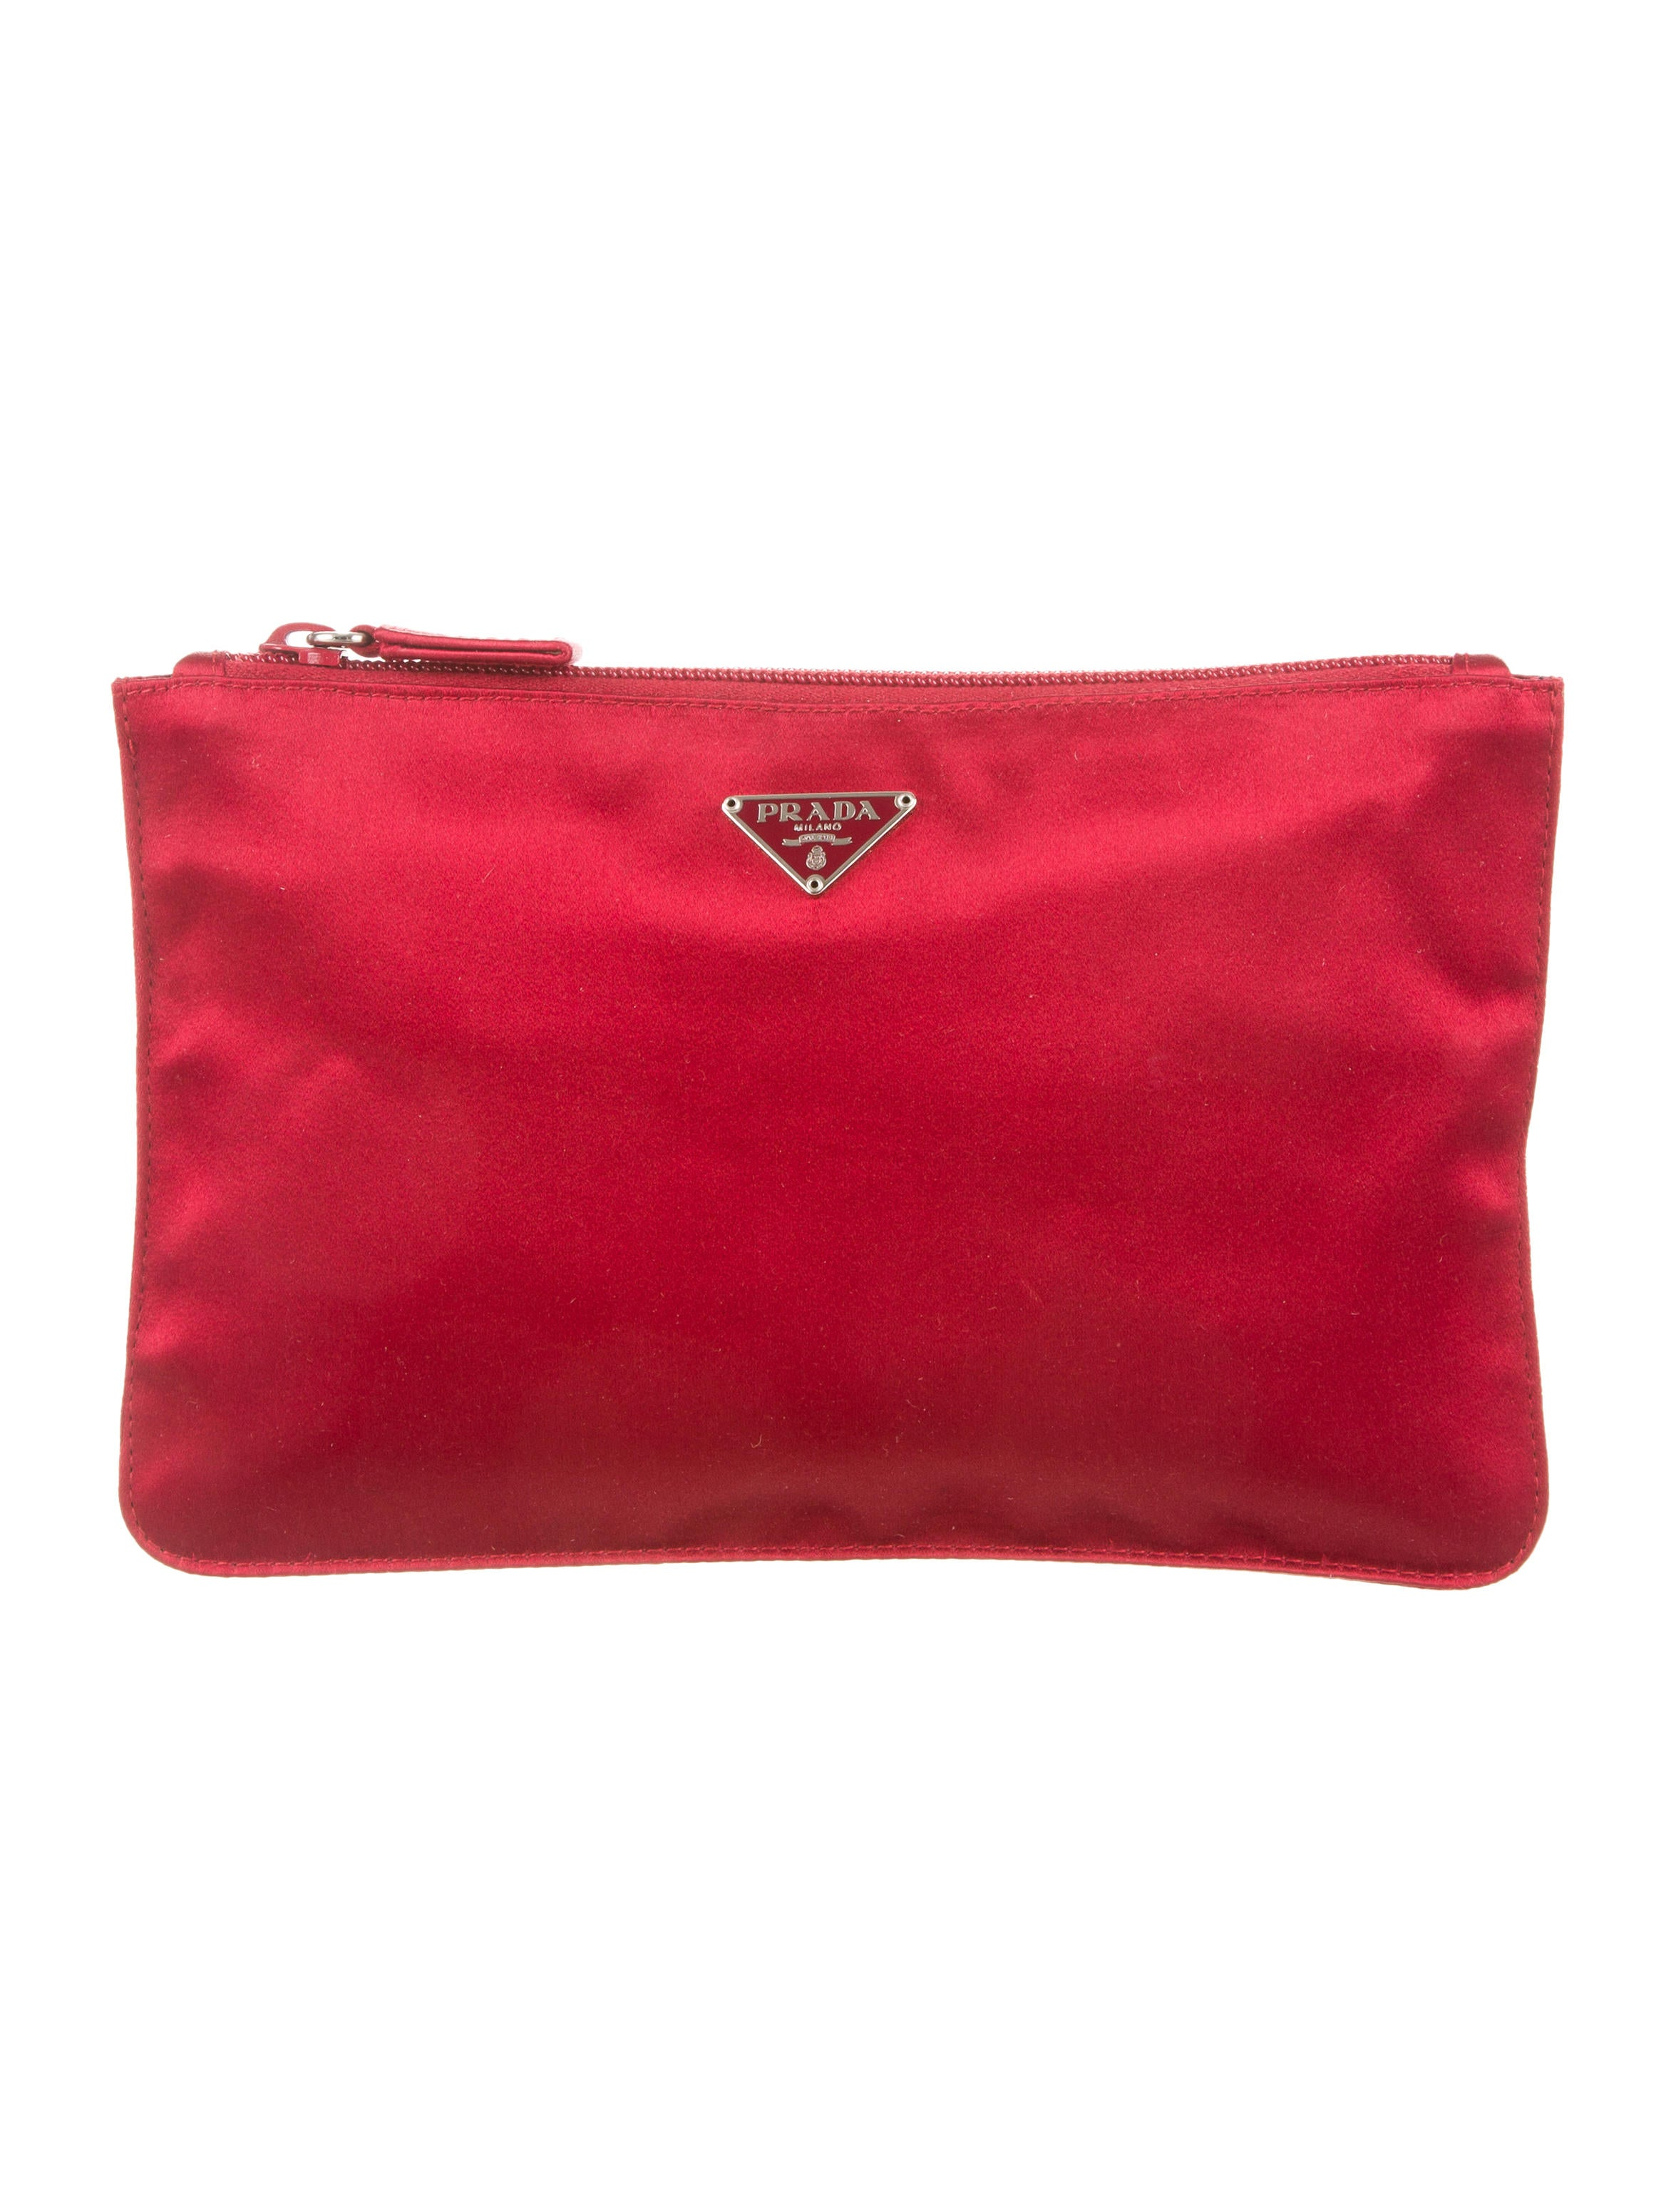 prada black clutch bag - prada satin pouch, prada bag collections